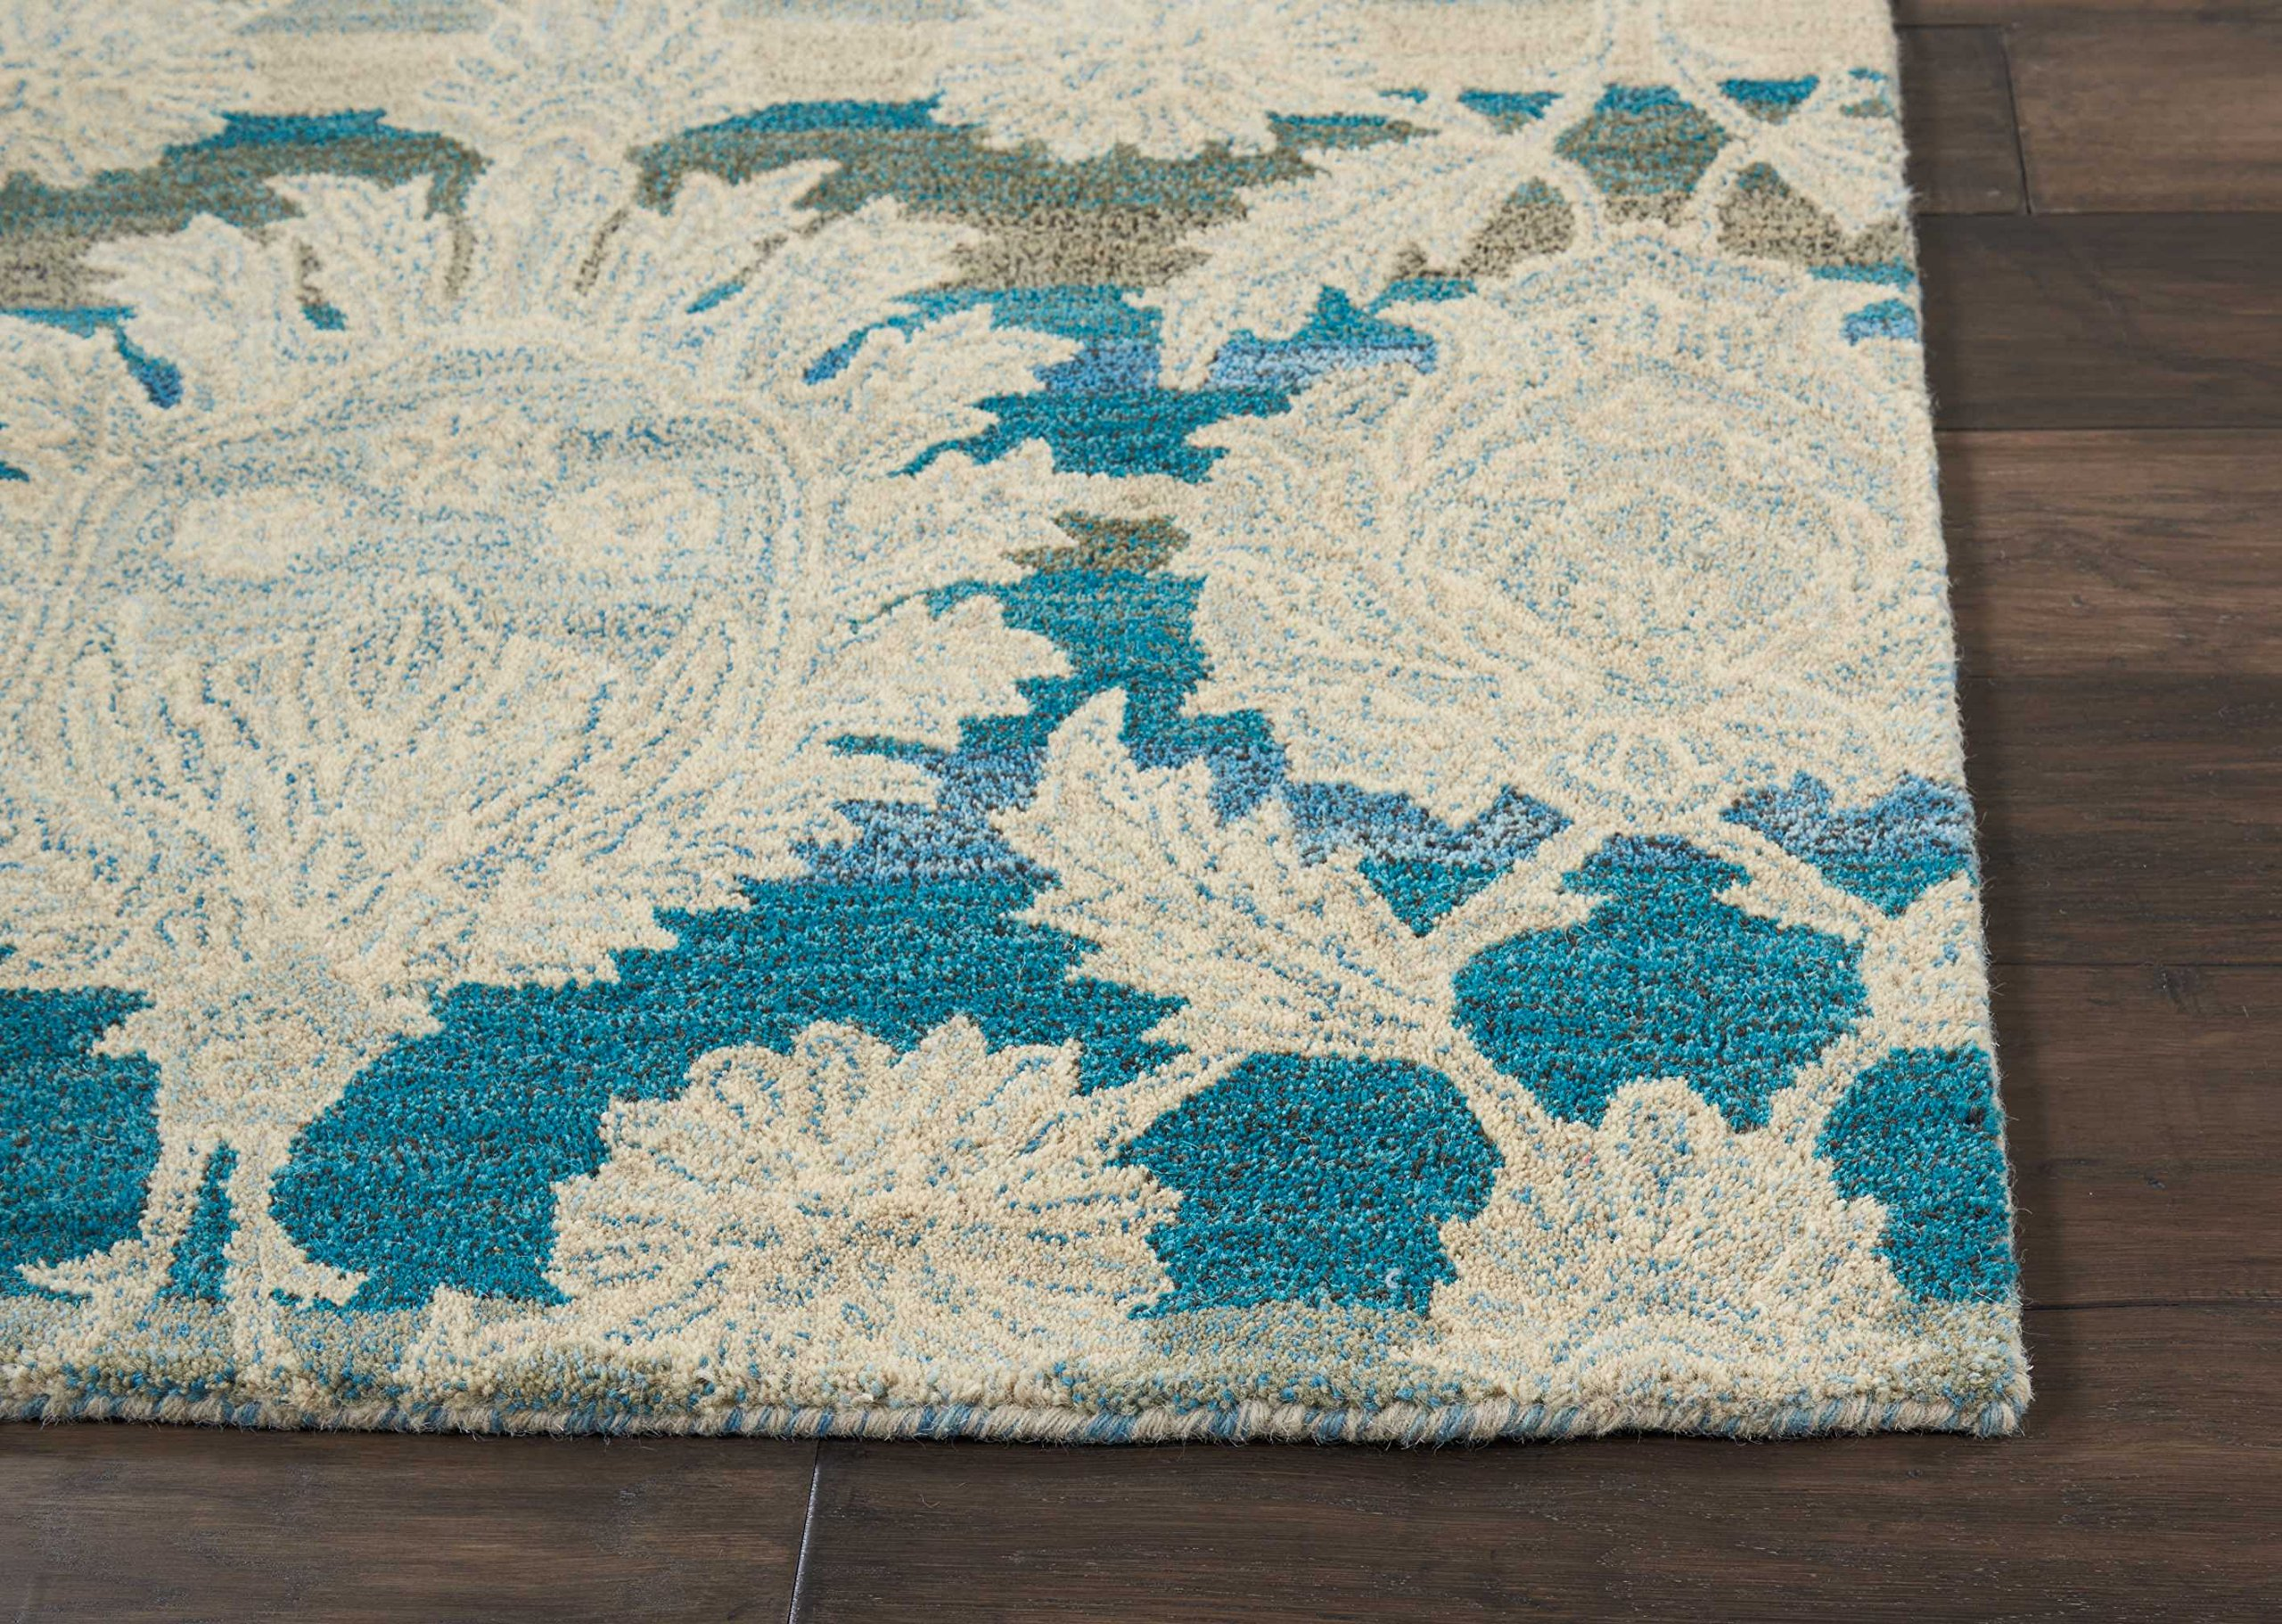 Nourison IH91 India House Area Rug, 8'X10'6'', IVORY/TEAL by Nourison (Image #3)